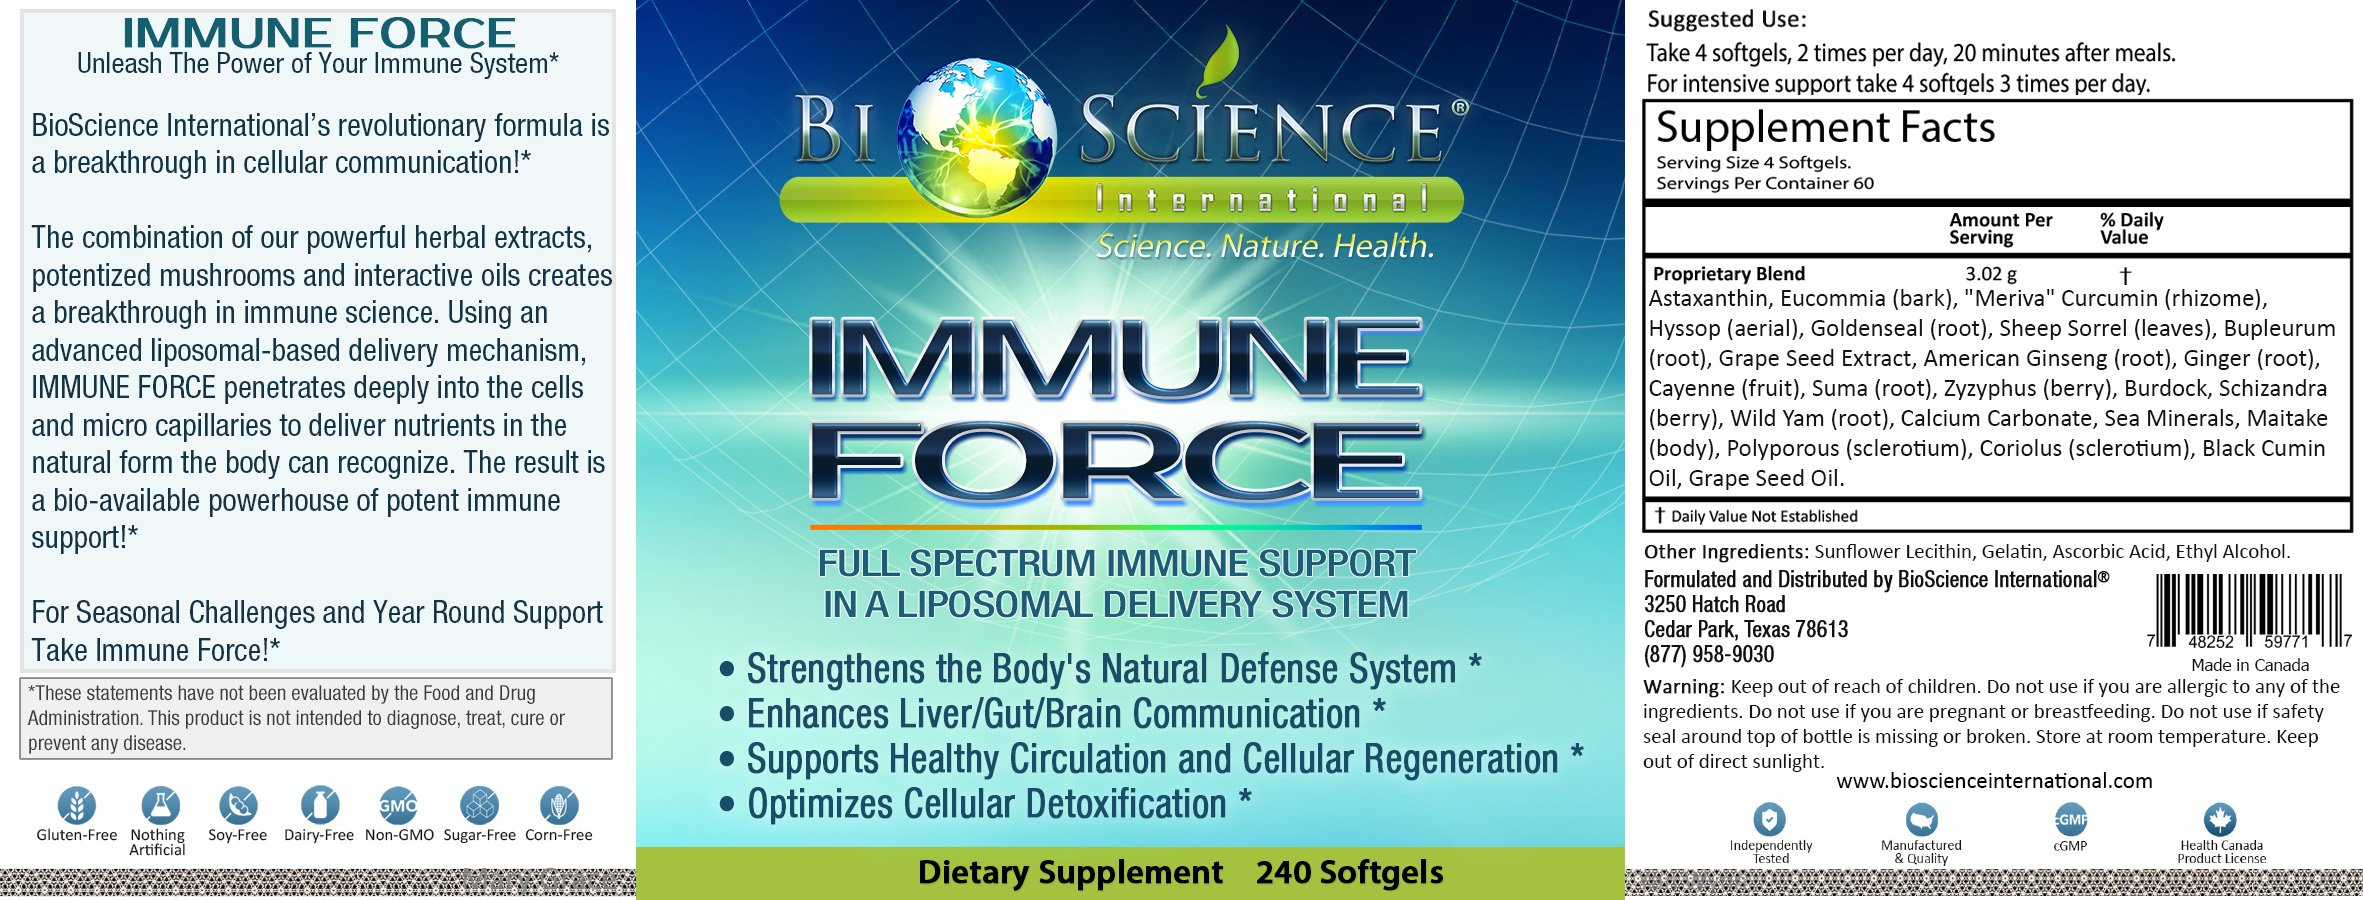 BIOSCIENCE Immune Force: Super Advanced Immune Support Booster Supplement For Men & Women (240 Softgels) Anti Inflammatory Wellness Immunity Booster With Mushroom Content by Bioscience International (Image #3)